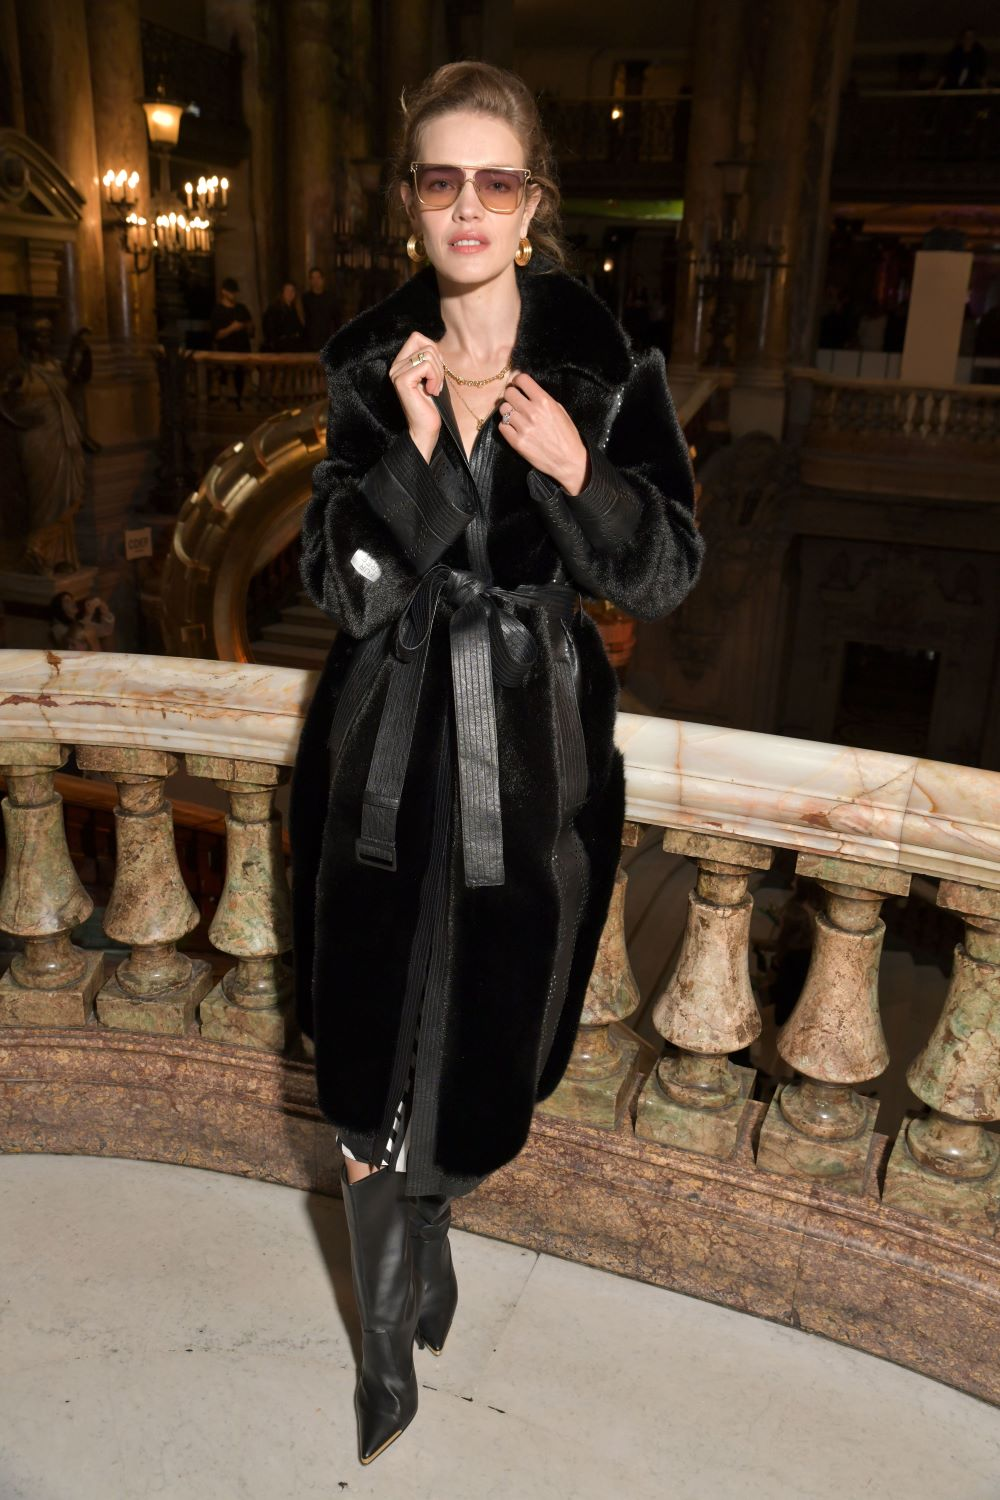 Stella McCartney, the ethical luxury fashion brand, debuted a coat trimmed with Ecopel bio-based faux fur at Paris Fashion Week last month.